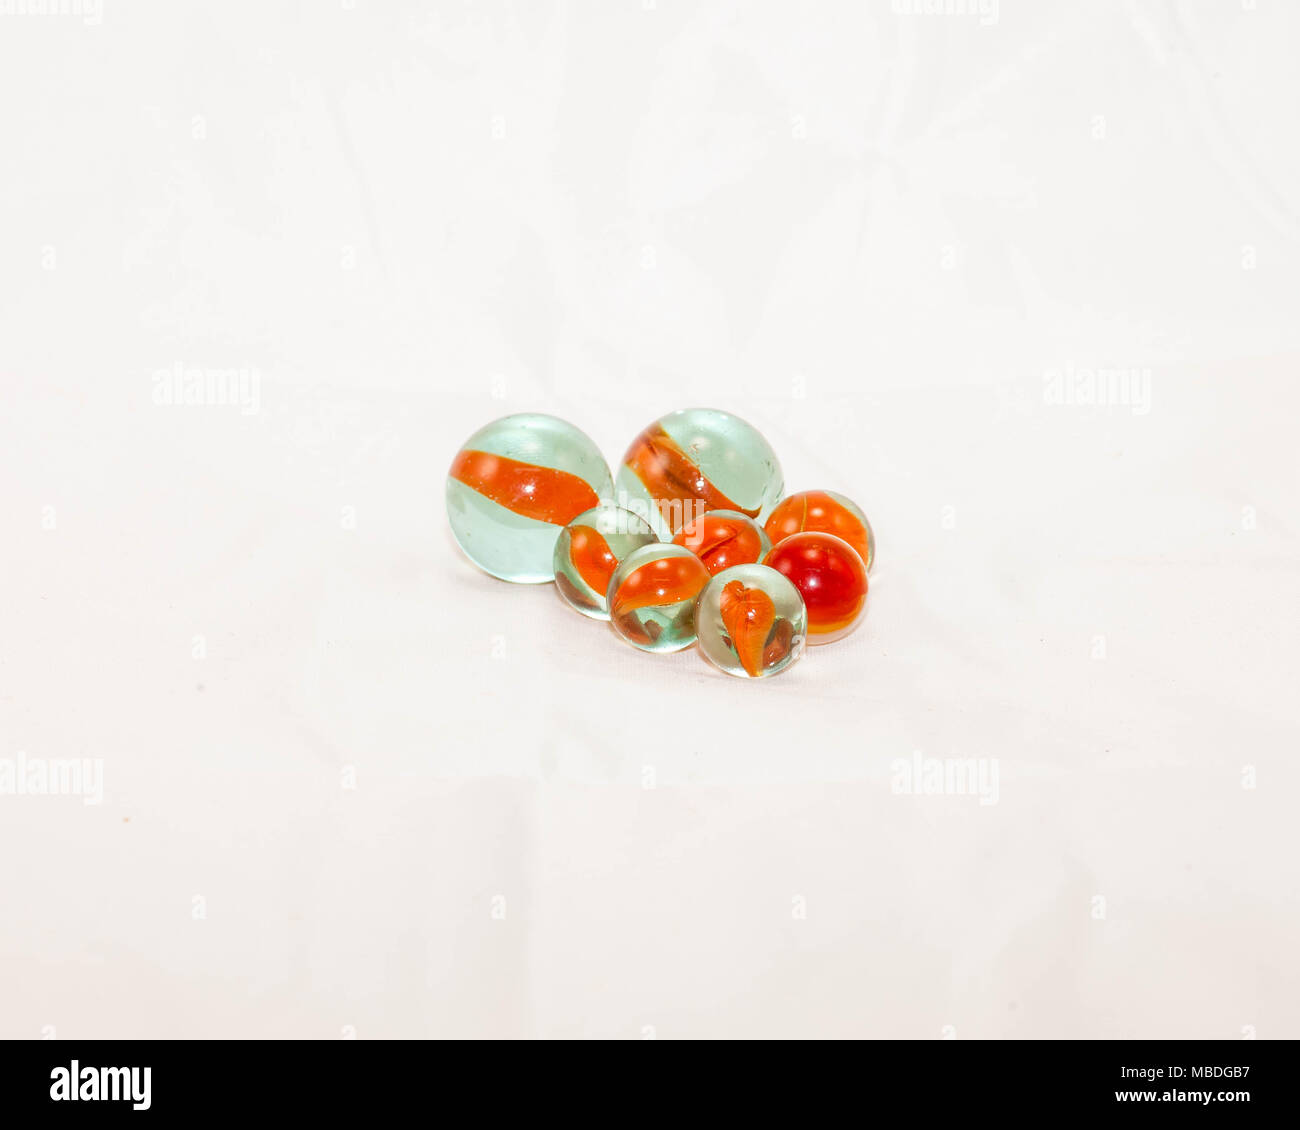 two sizes of orange cats-eye marbles at rest - Stock Image